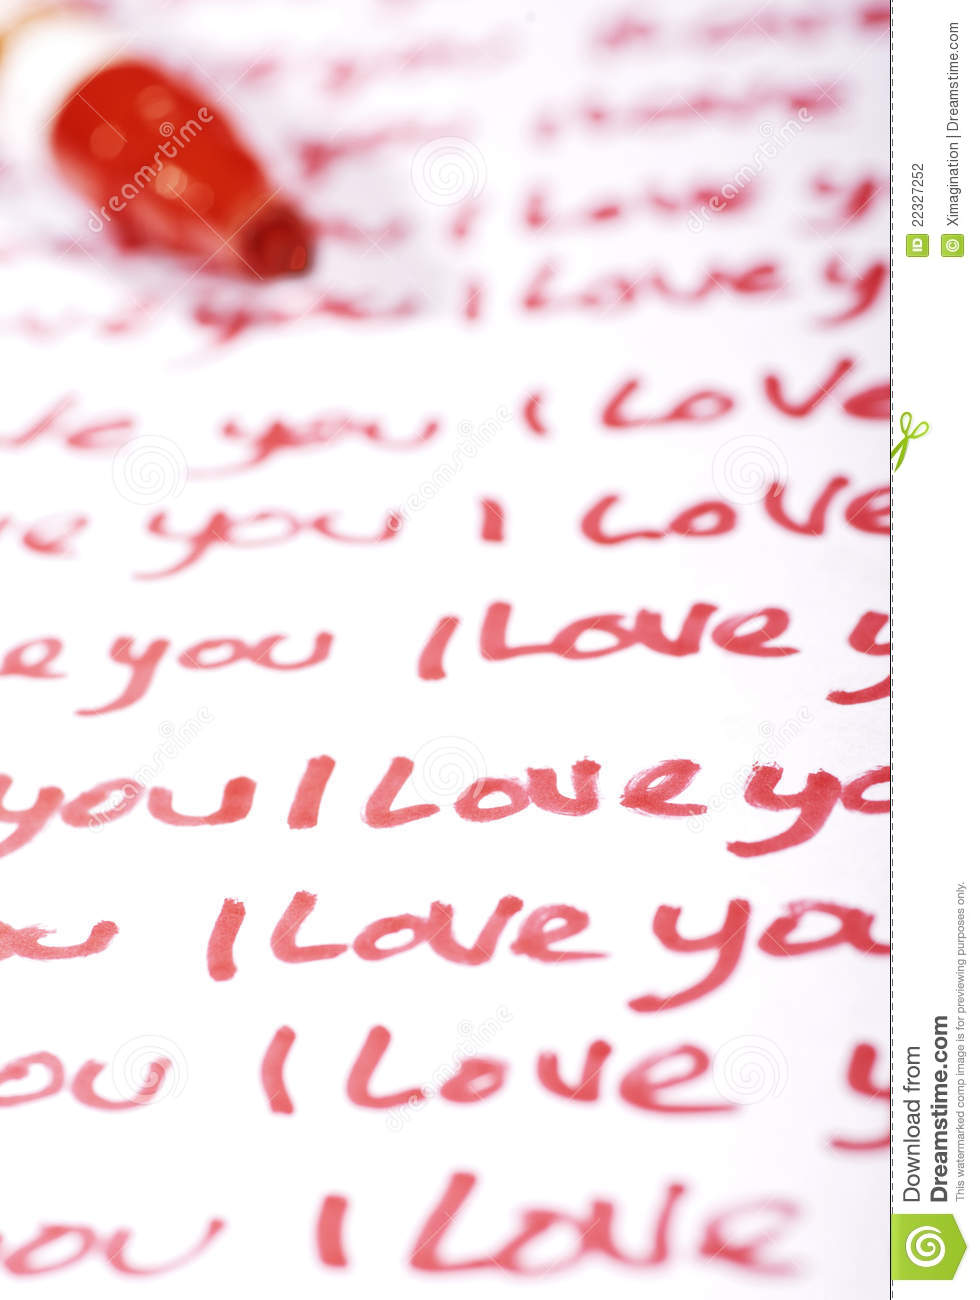 Valentine's Day Love Letter #1 My Dearest, My All, Valentine's Day, and what may I say to you but that it means more to me this year than ever before, only because I've been with you longer now than yesterday, or last week, or a year ago.